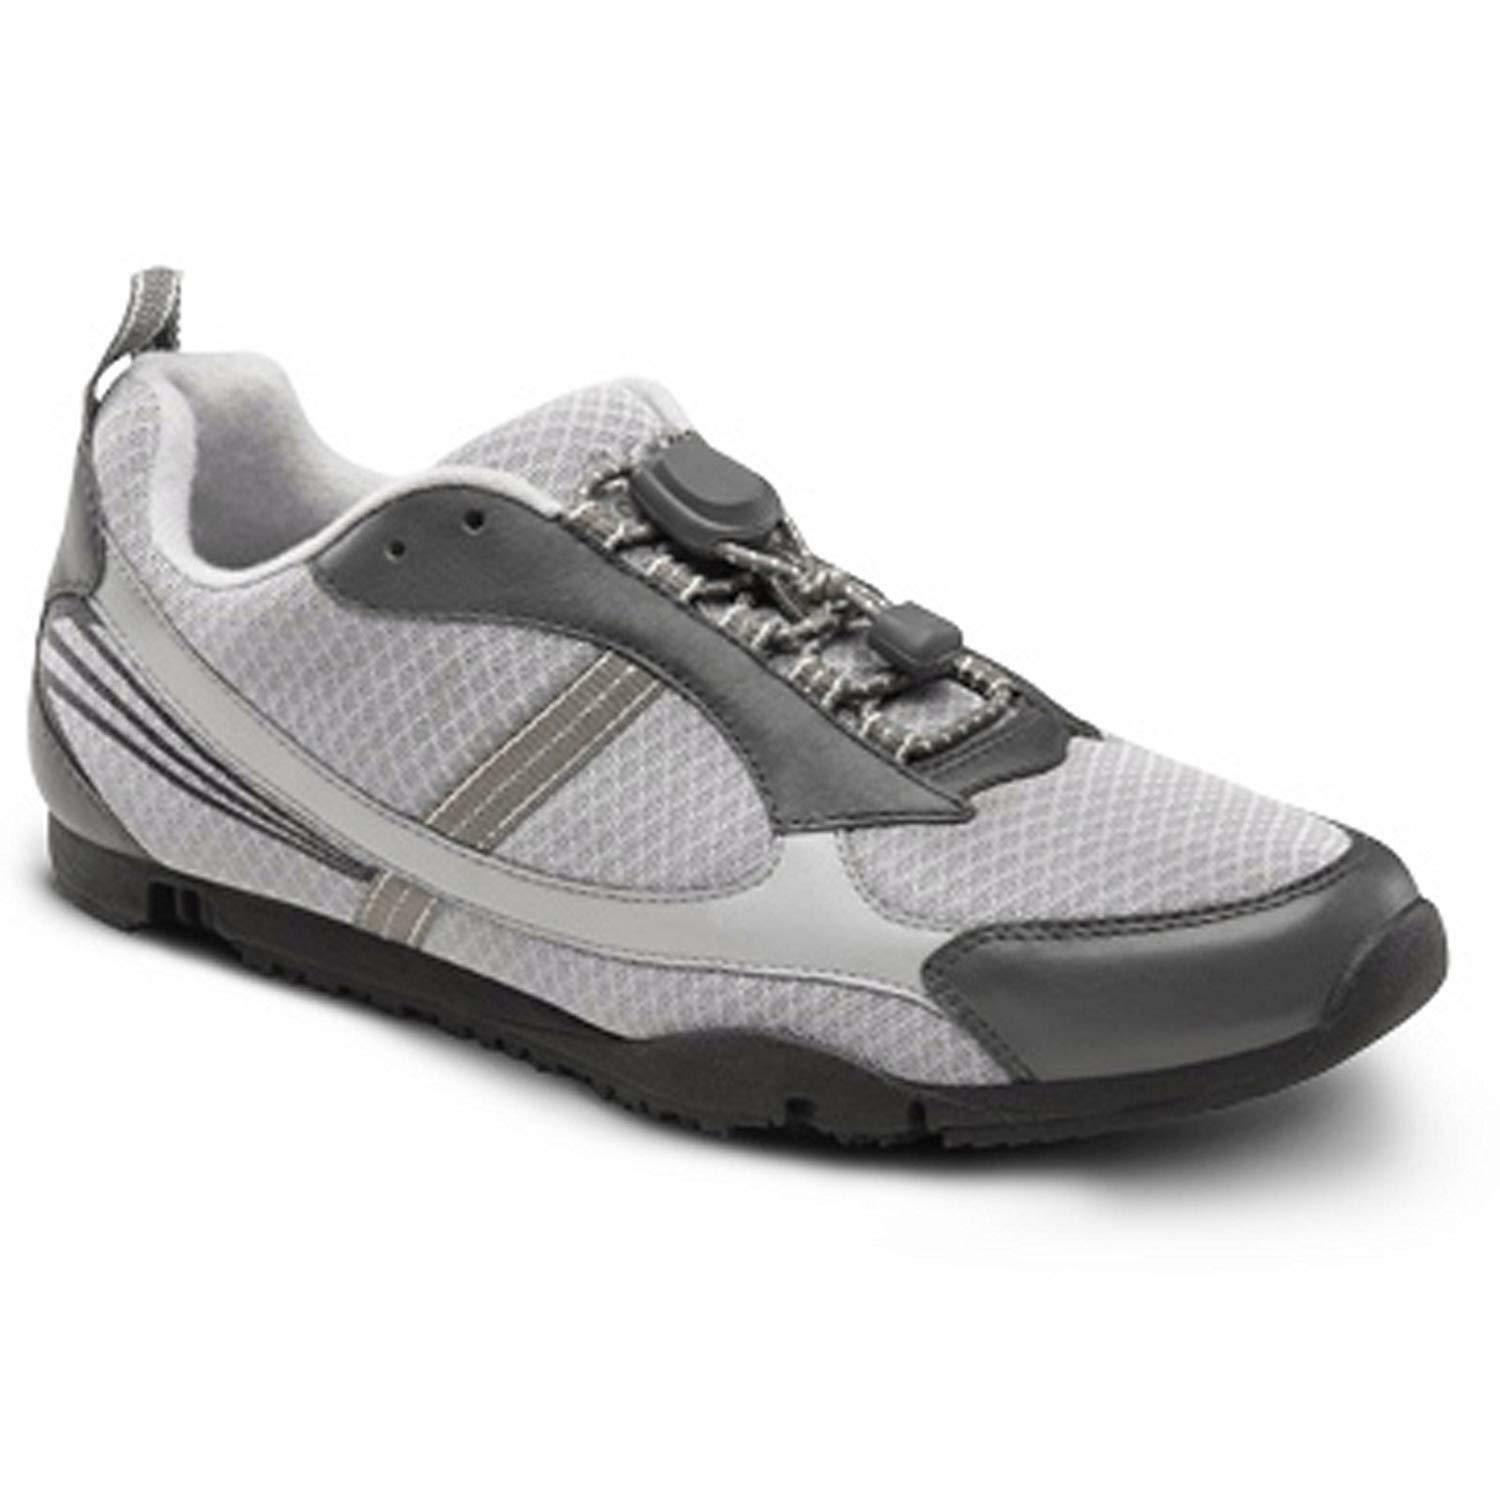 Dr. Comfort Sandy Women's Therapeutic Sneaker for Many Many Many Foot Conditions Pick Size 4c7646